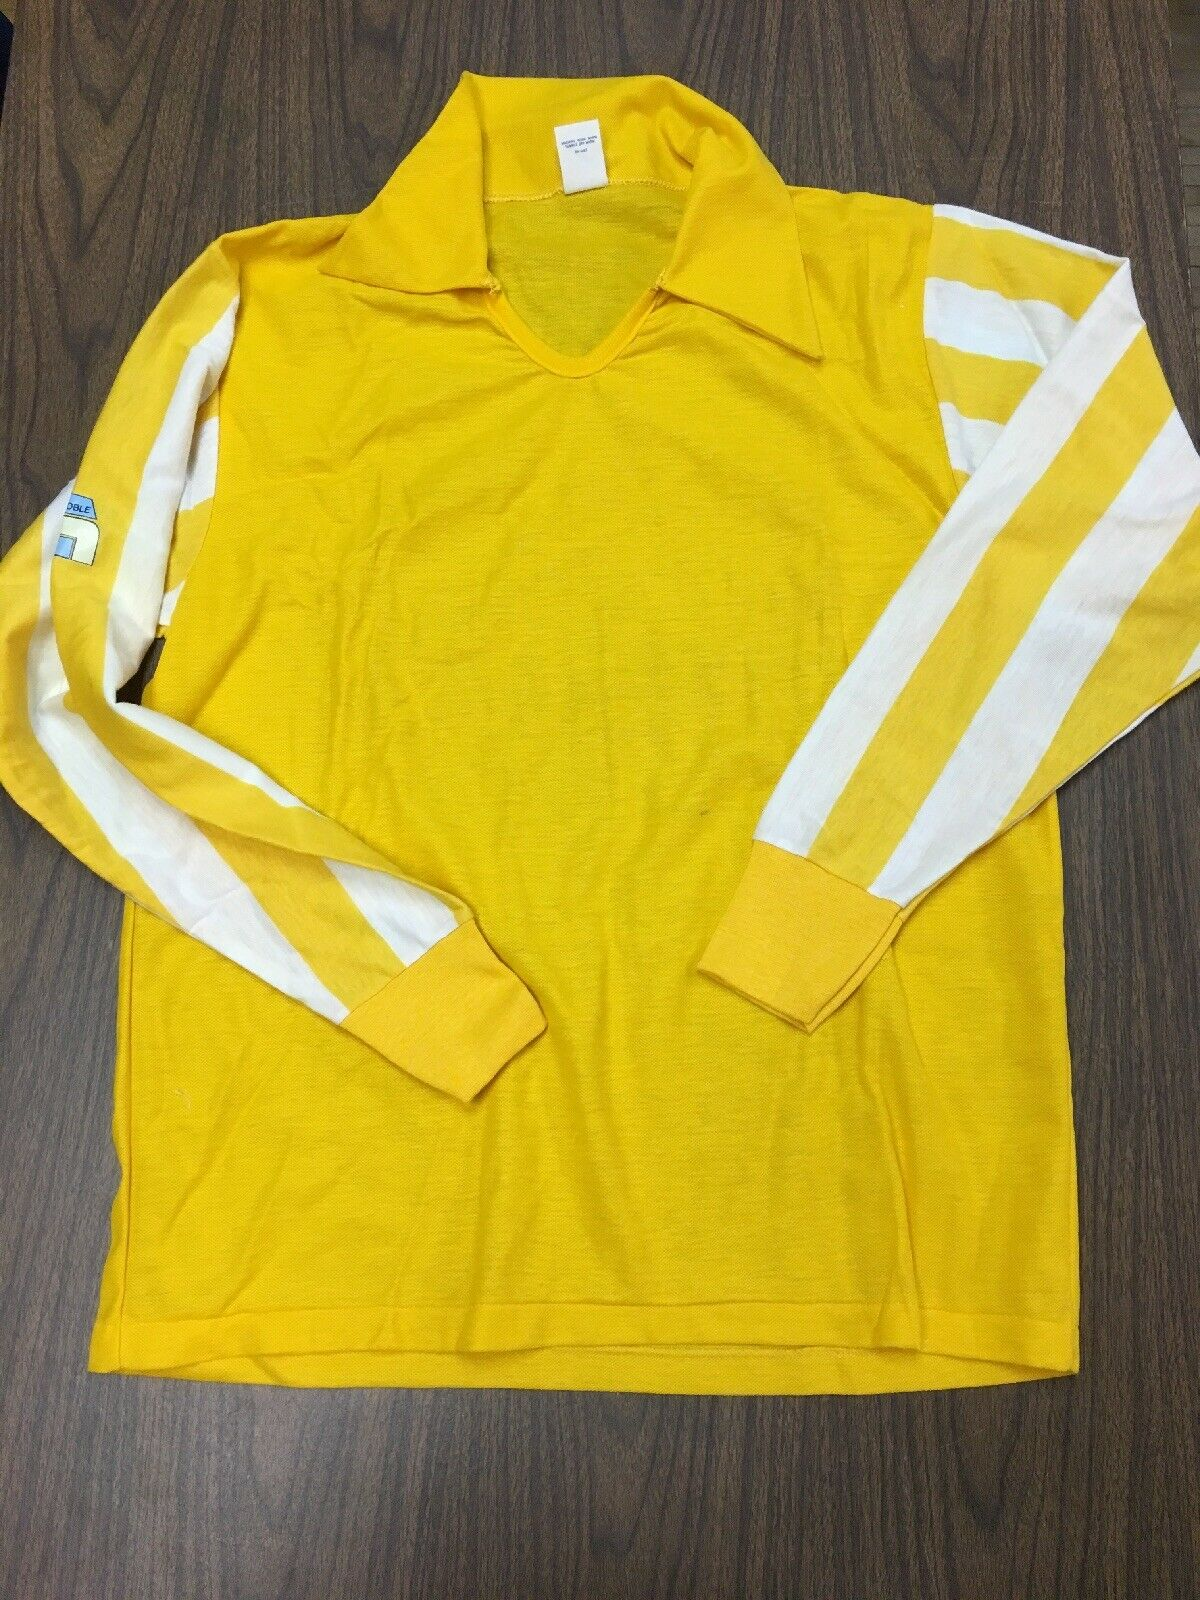 Vintage Rare 60s 70s Grenoble Knitwear Inc US SOCCER FEDERATION Xl Jersey Polo